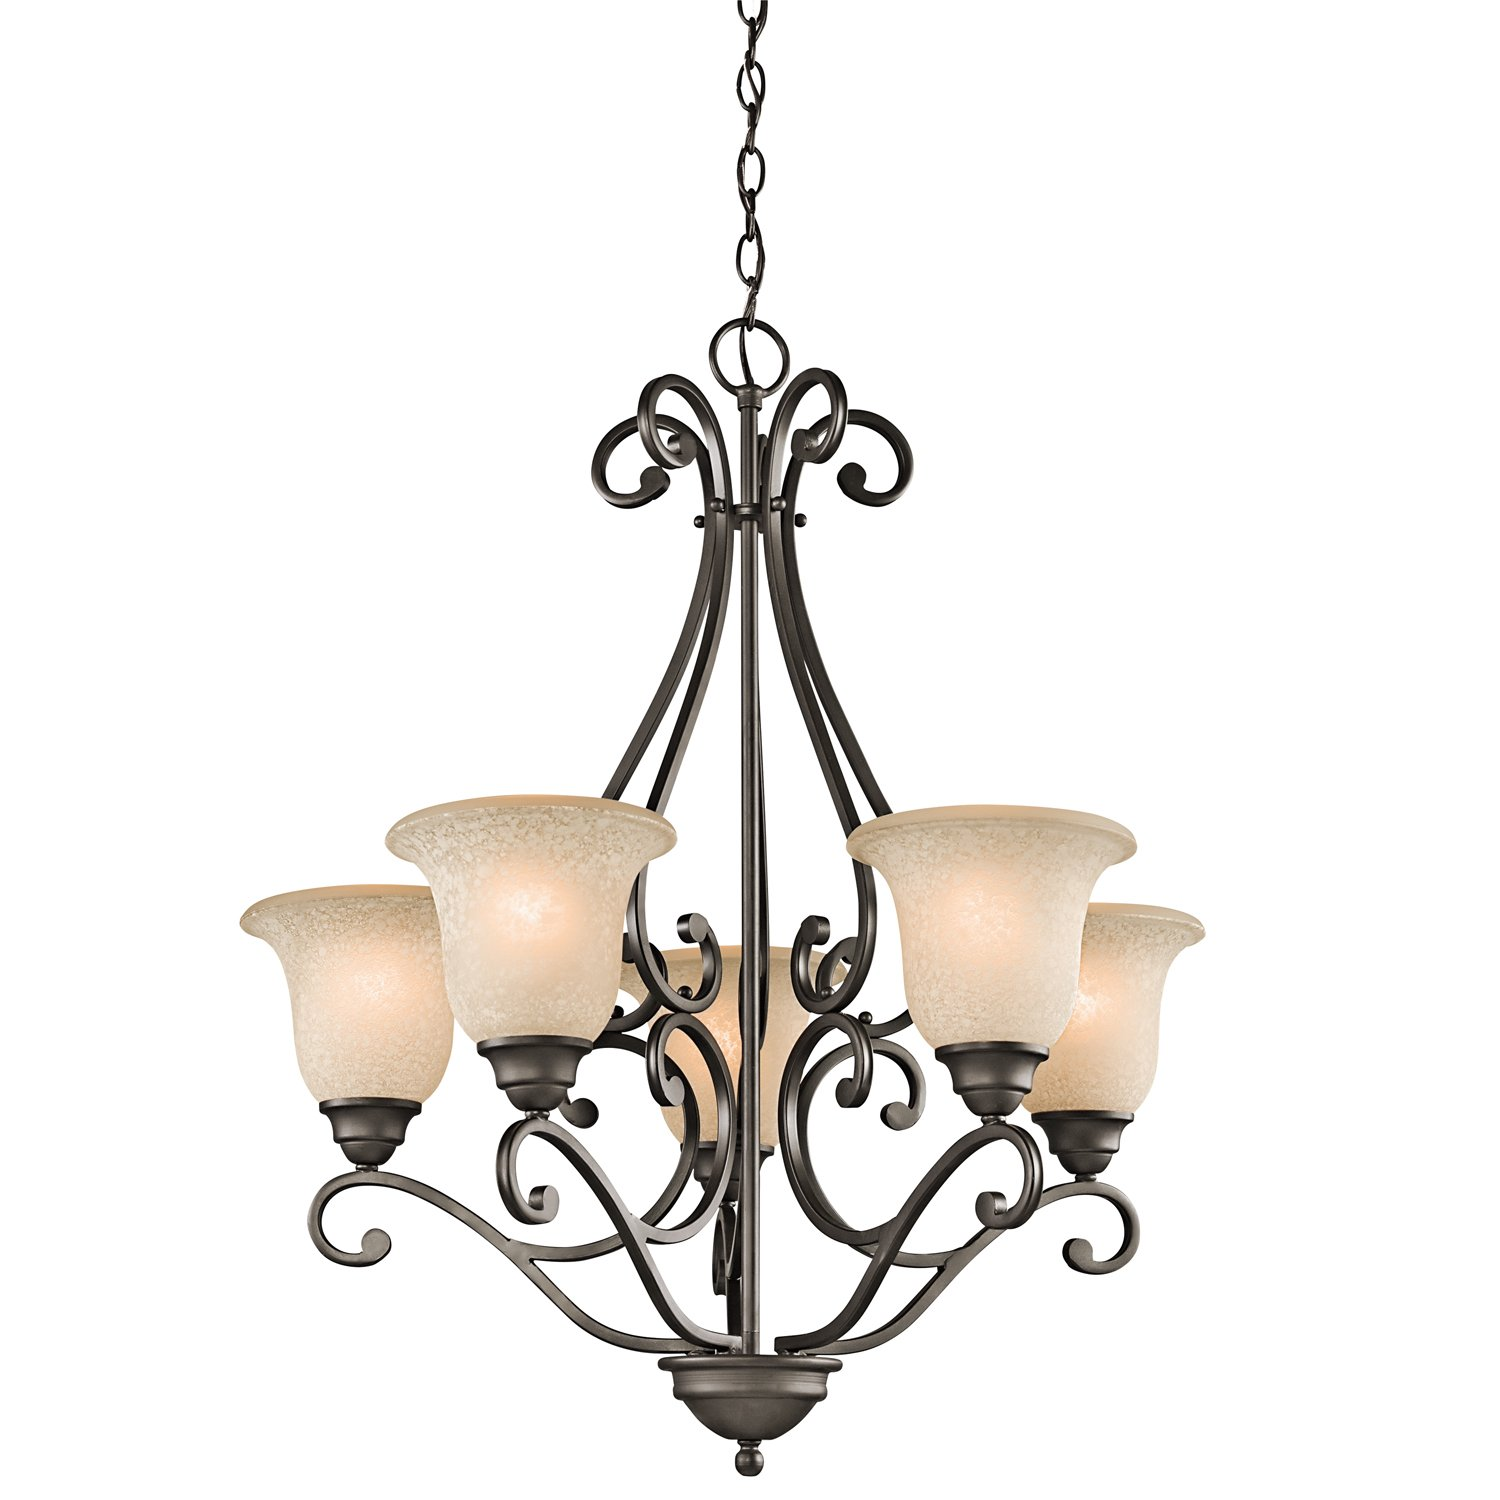 "Kichler 43224OZ Camerena Chandeliers Lighting, Olde Bronze 5-Light (27"" W x 31"" H) 500 Watts"